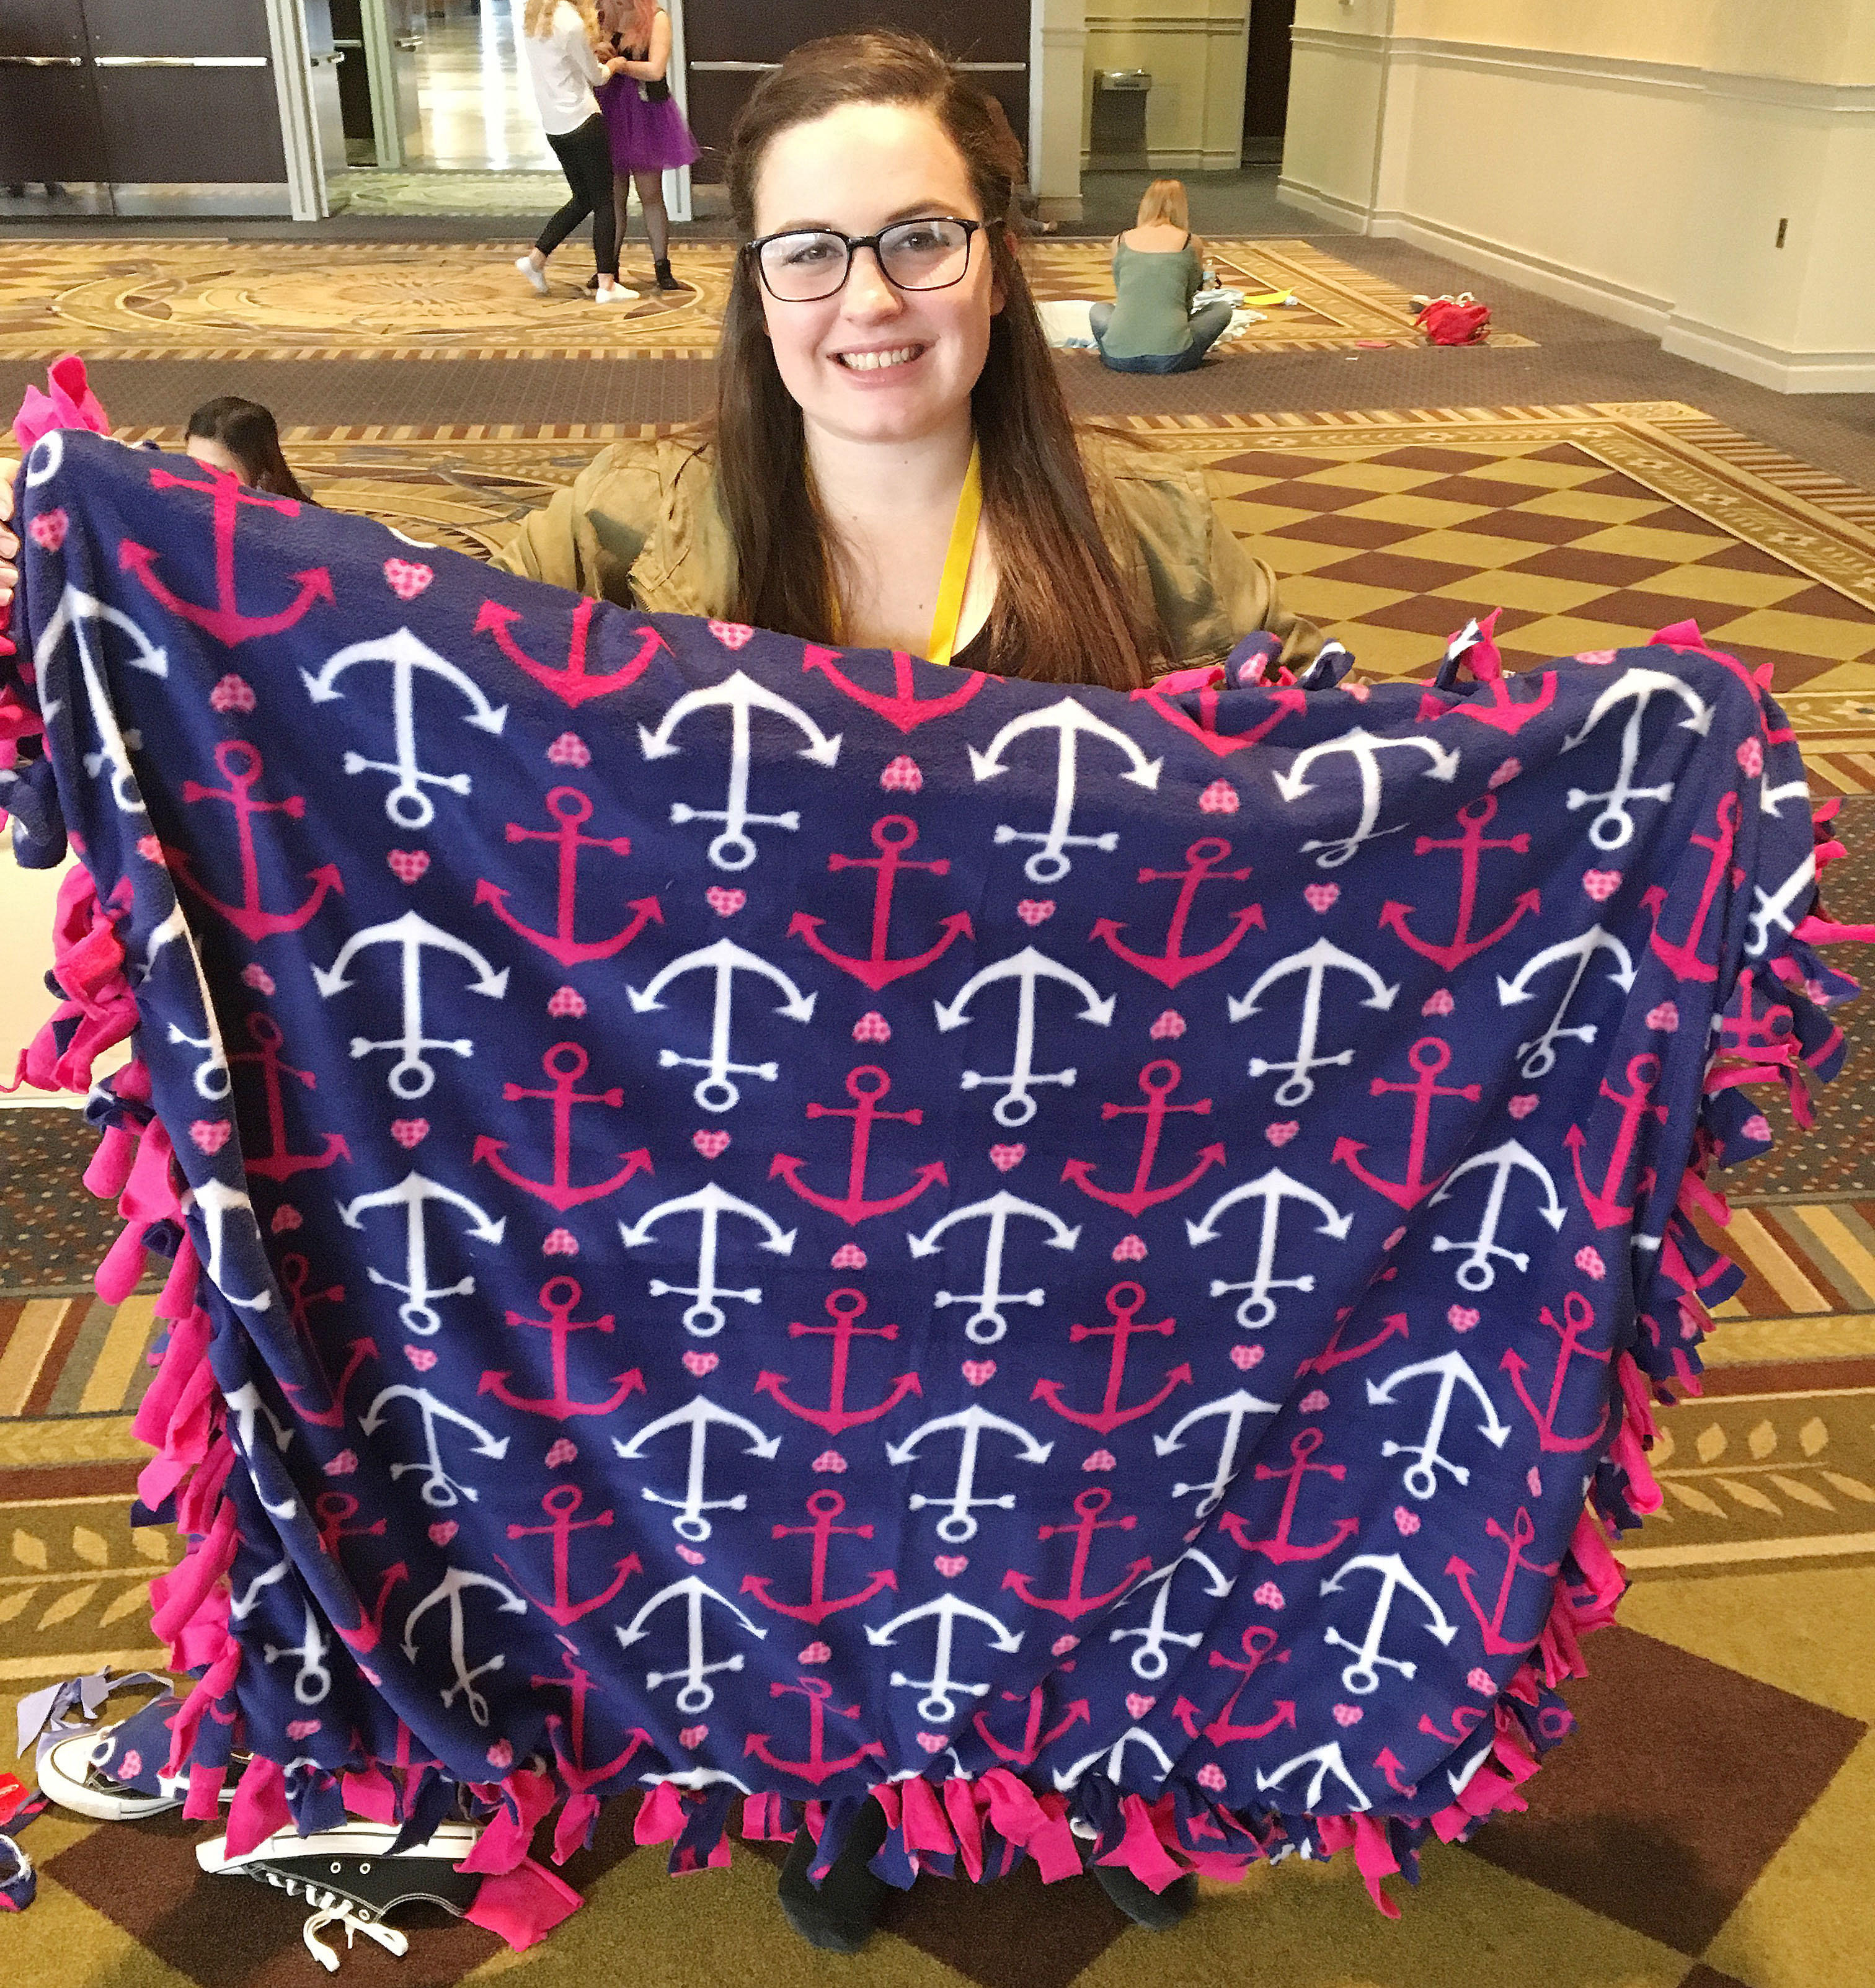 CHS junior Caitlin Bright holds a blanket she made as part of a service project for children.